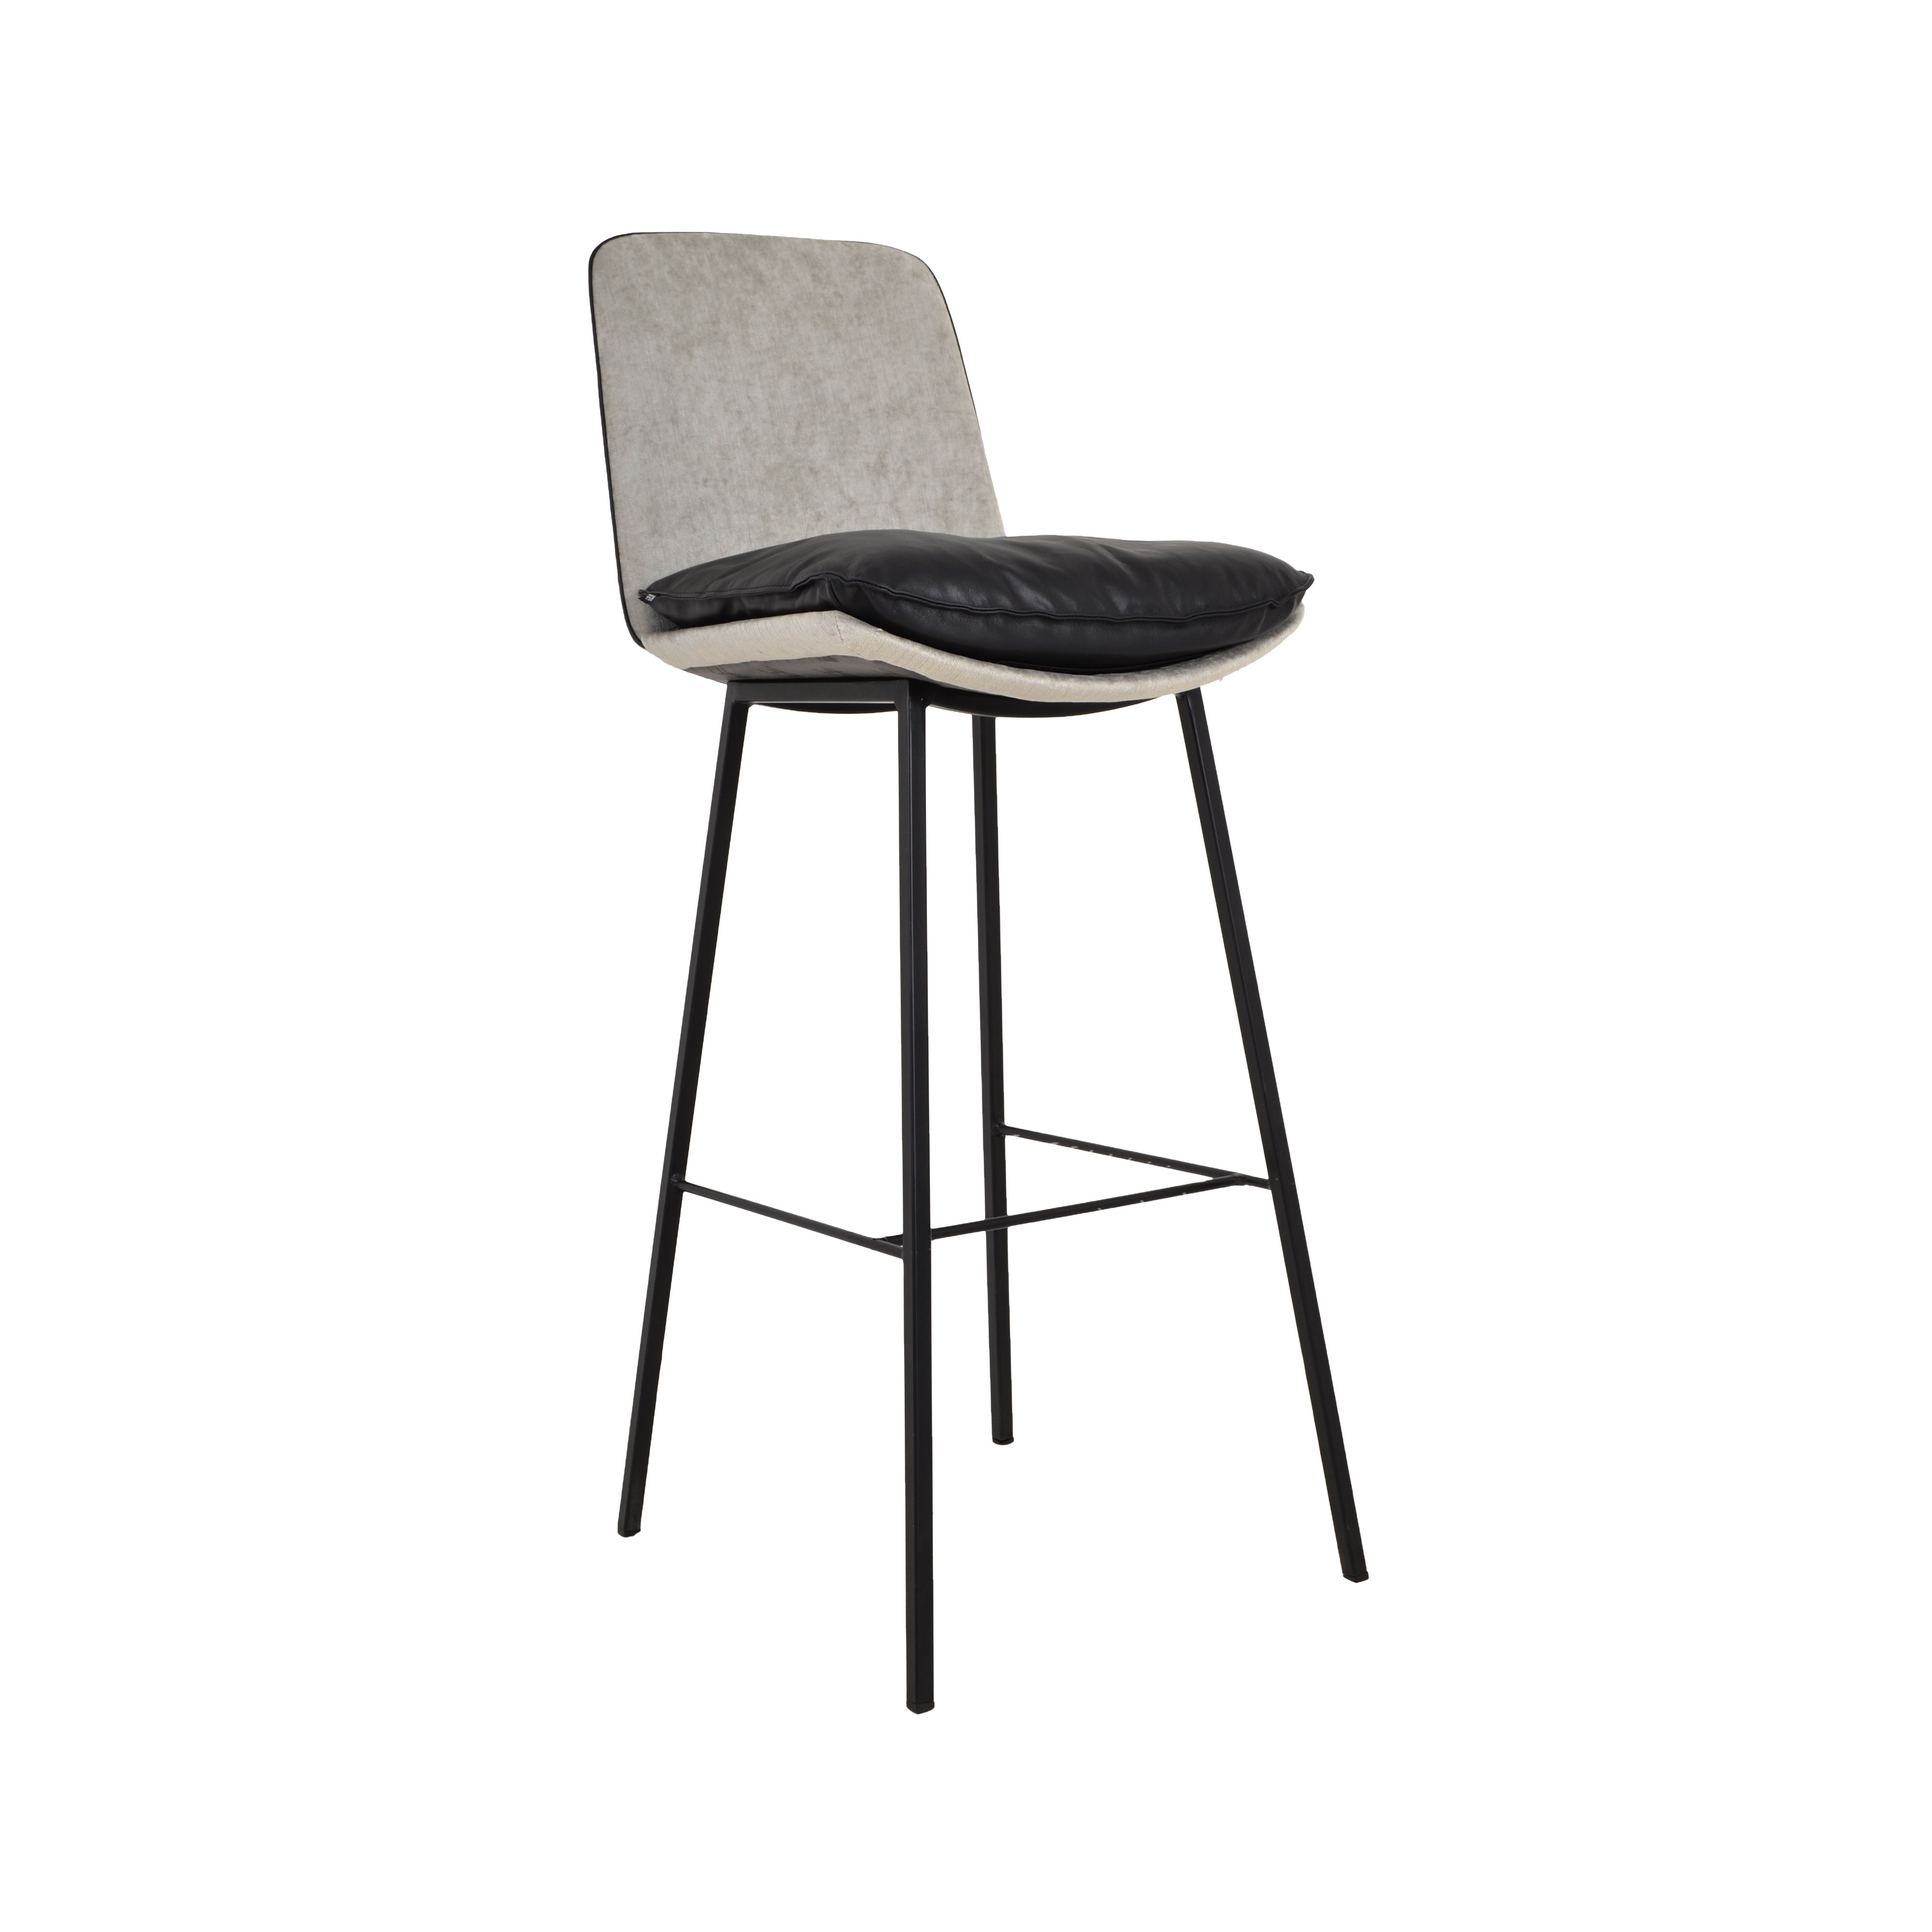 KFF LHASA barstool with swivel and adjustable height or